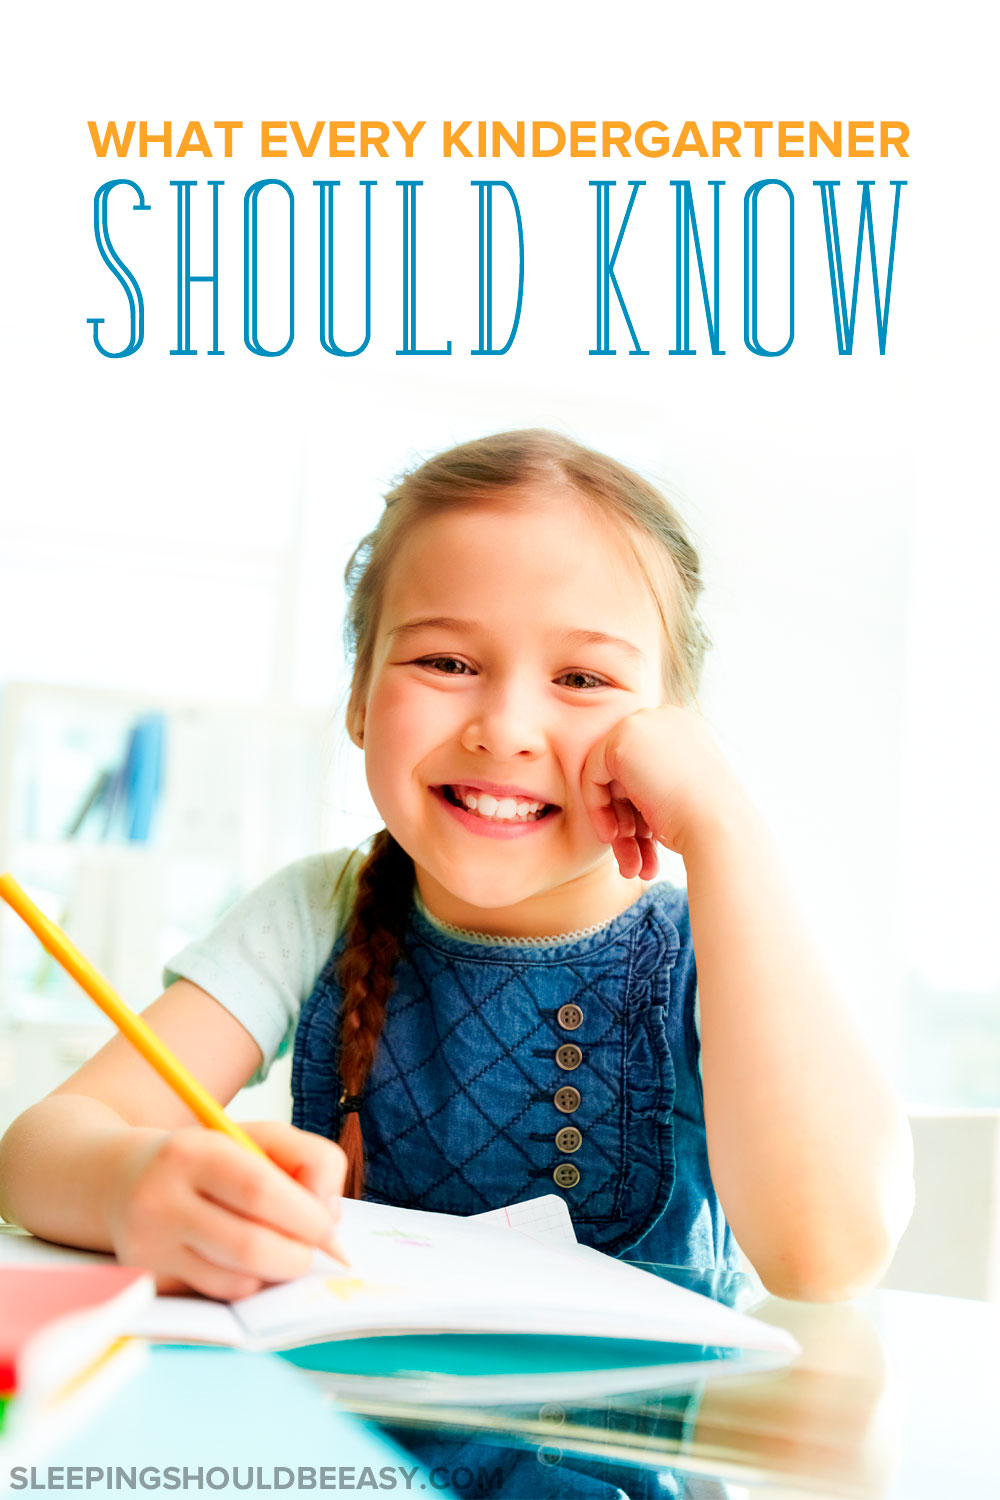 Want to make sure your child is on track with kindergarten and has learned what she needs to? Here's what a kindergartner should know by the end of the year. Check these 12 milestones and skills to see what every kindergartener should know before they go to first grade!